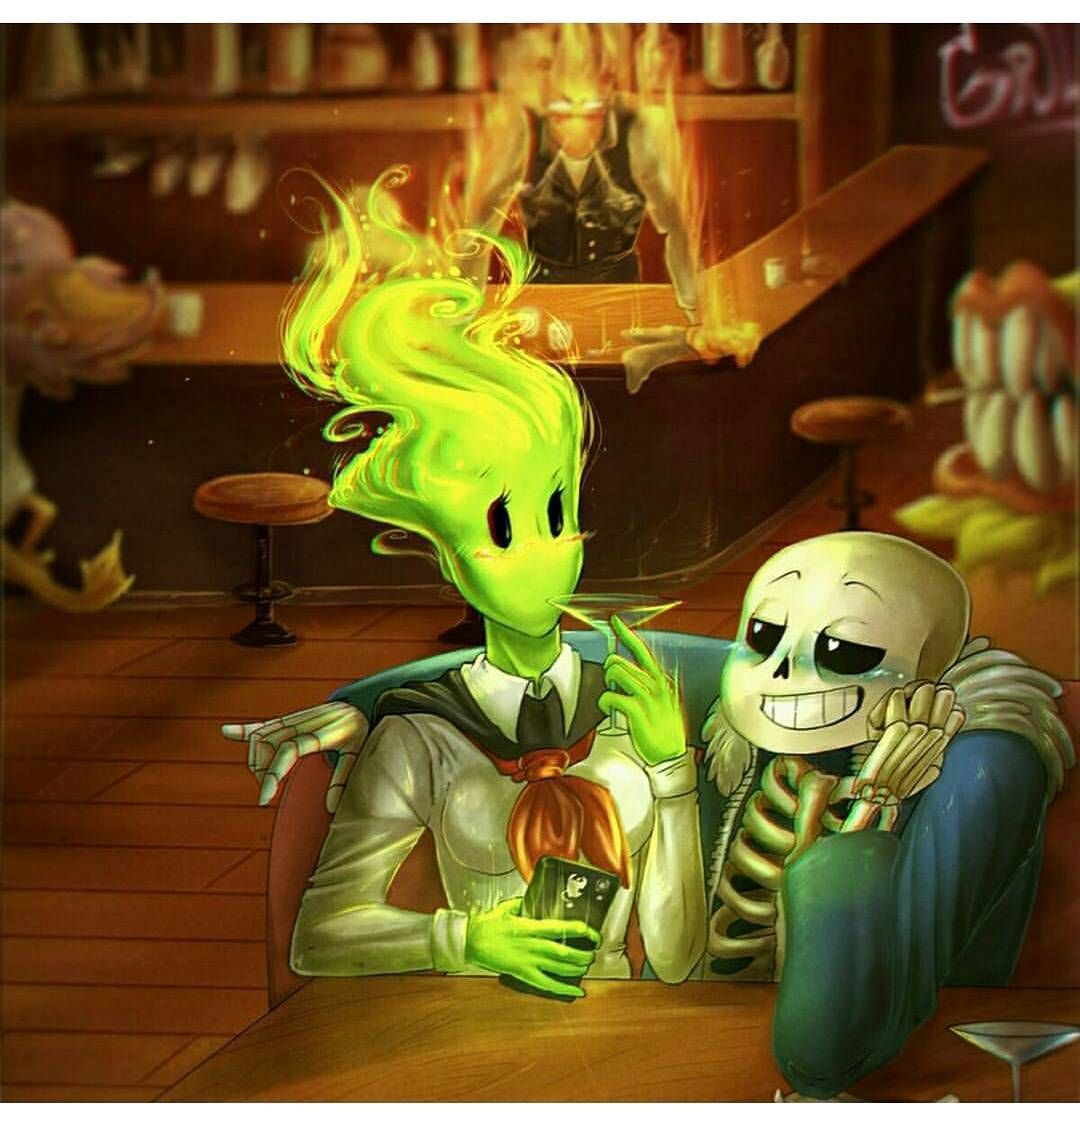 Someone's gonna die tonight I'm sure  Whether it's grillby